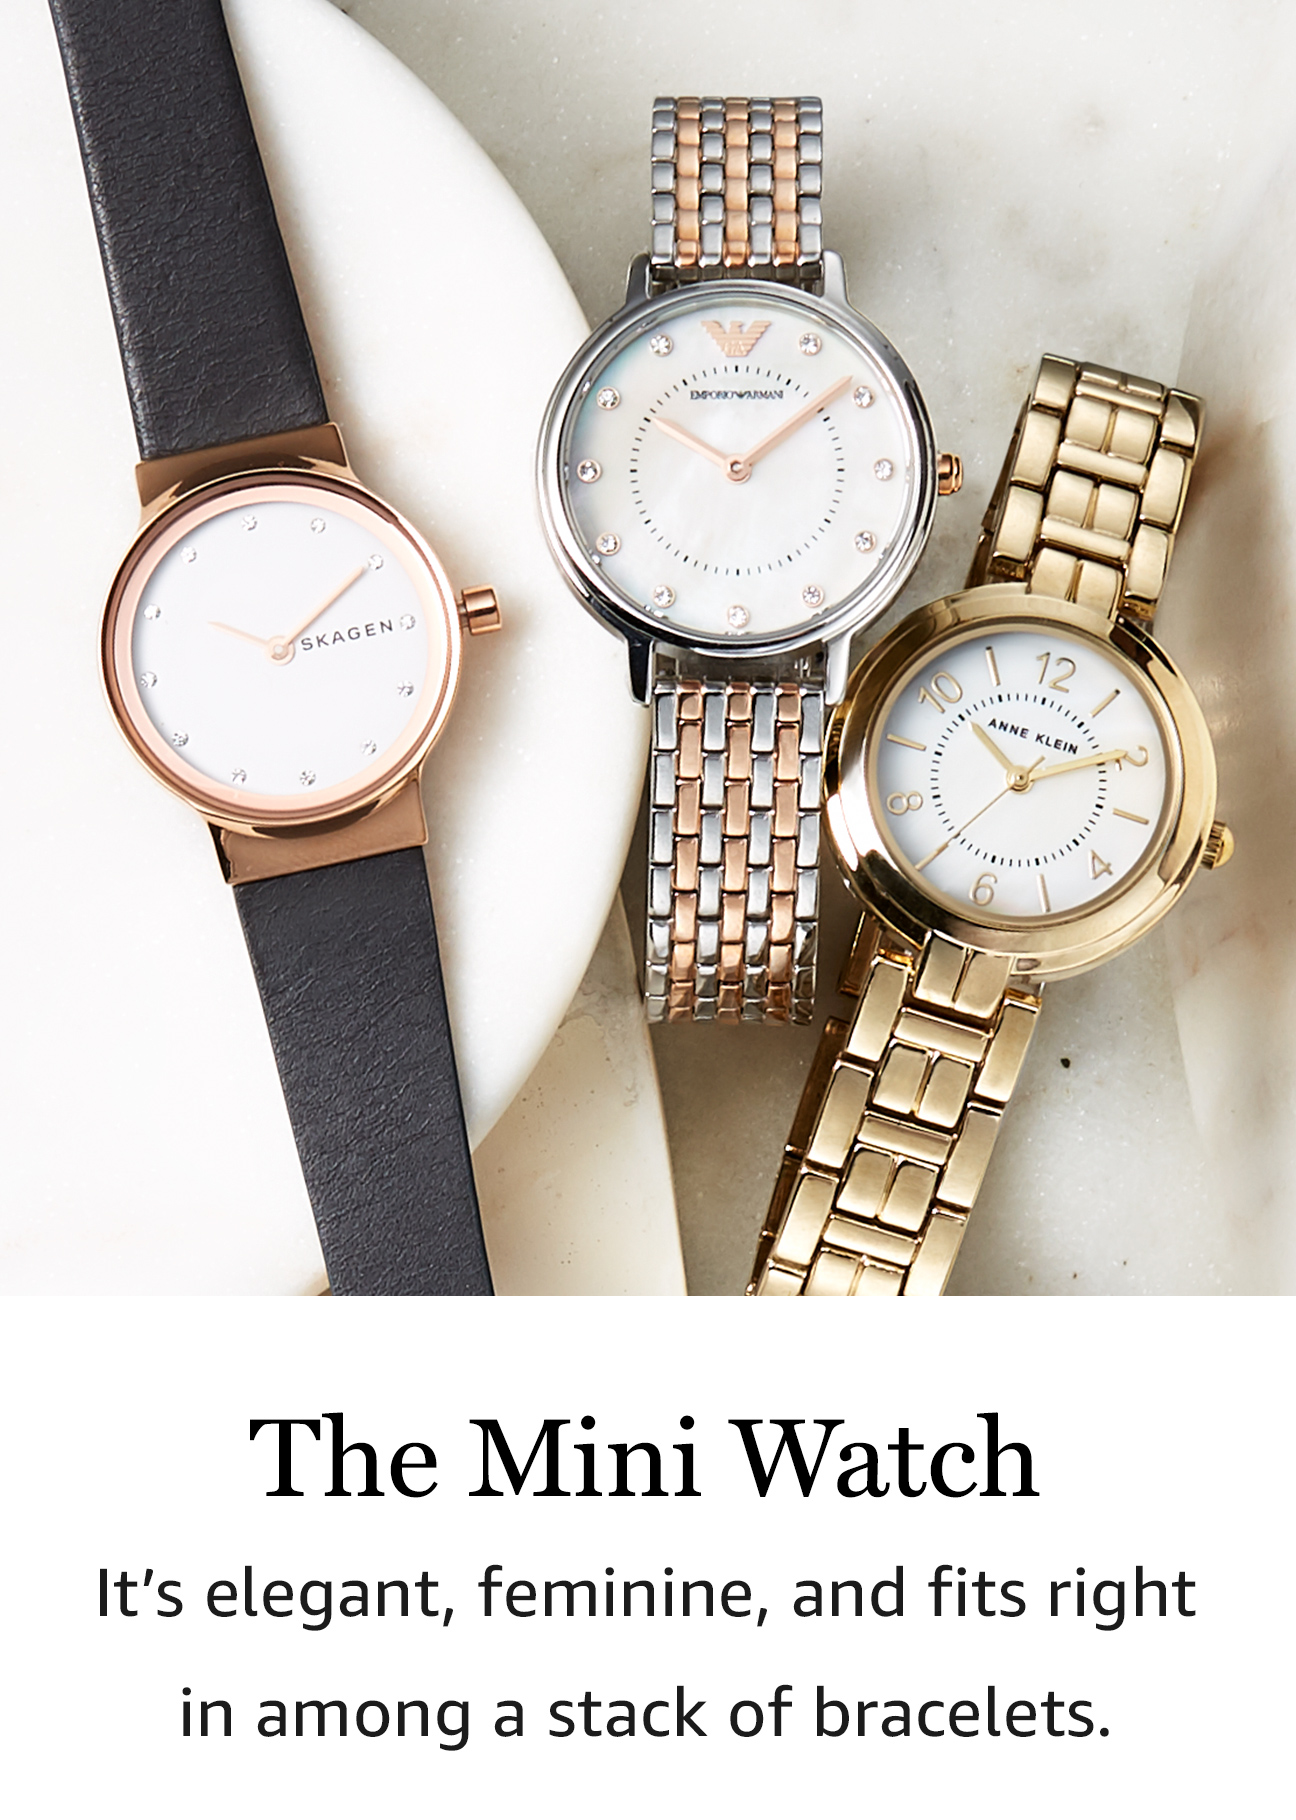 The Mini Watch: It's elegant, feminine, and fits right in among a stack of bracelets.